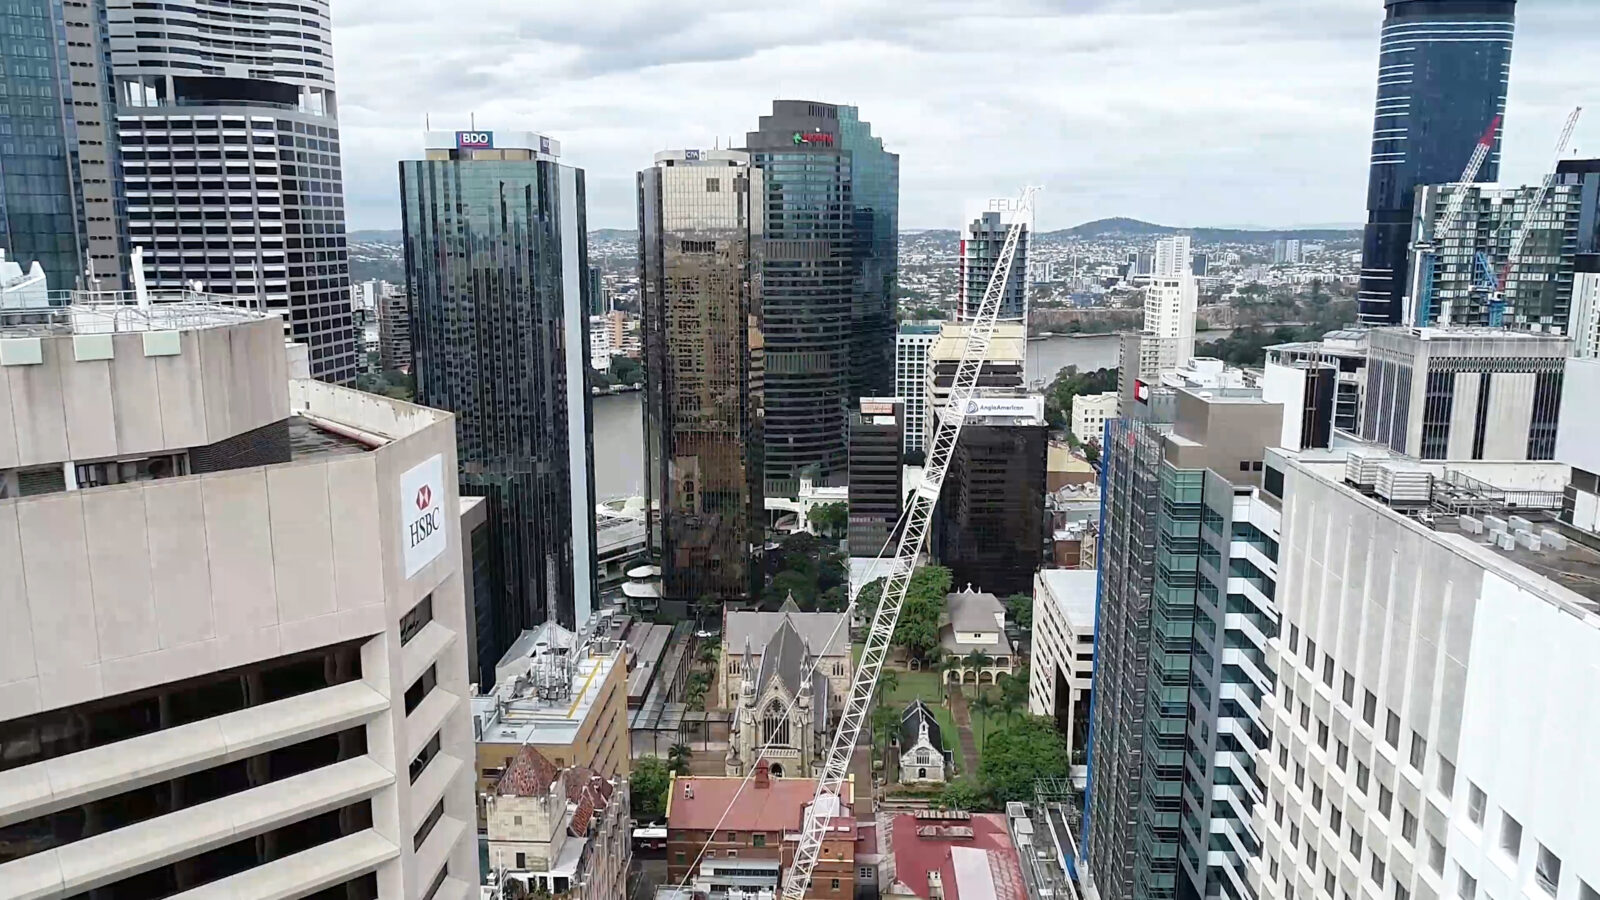 Drone inspections drone surveying Drone Photography Brisbane Australia